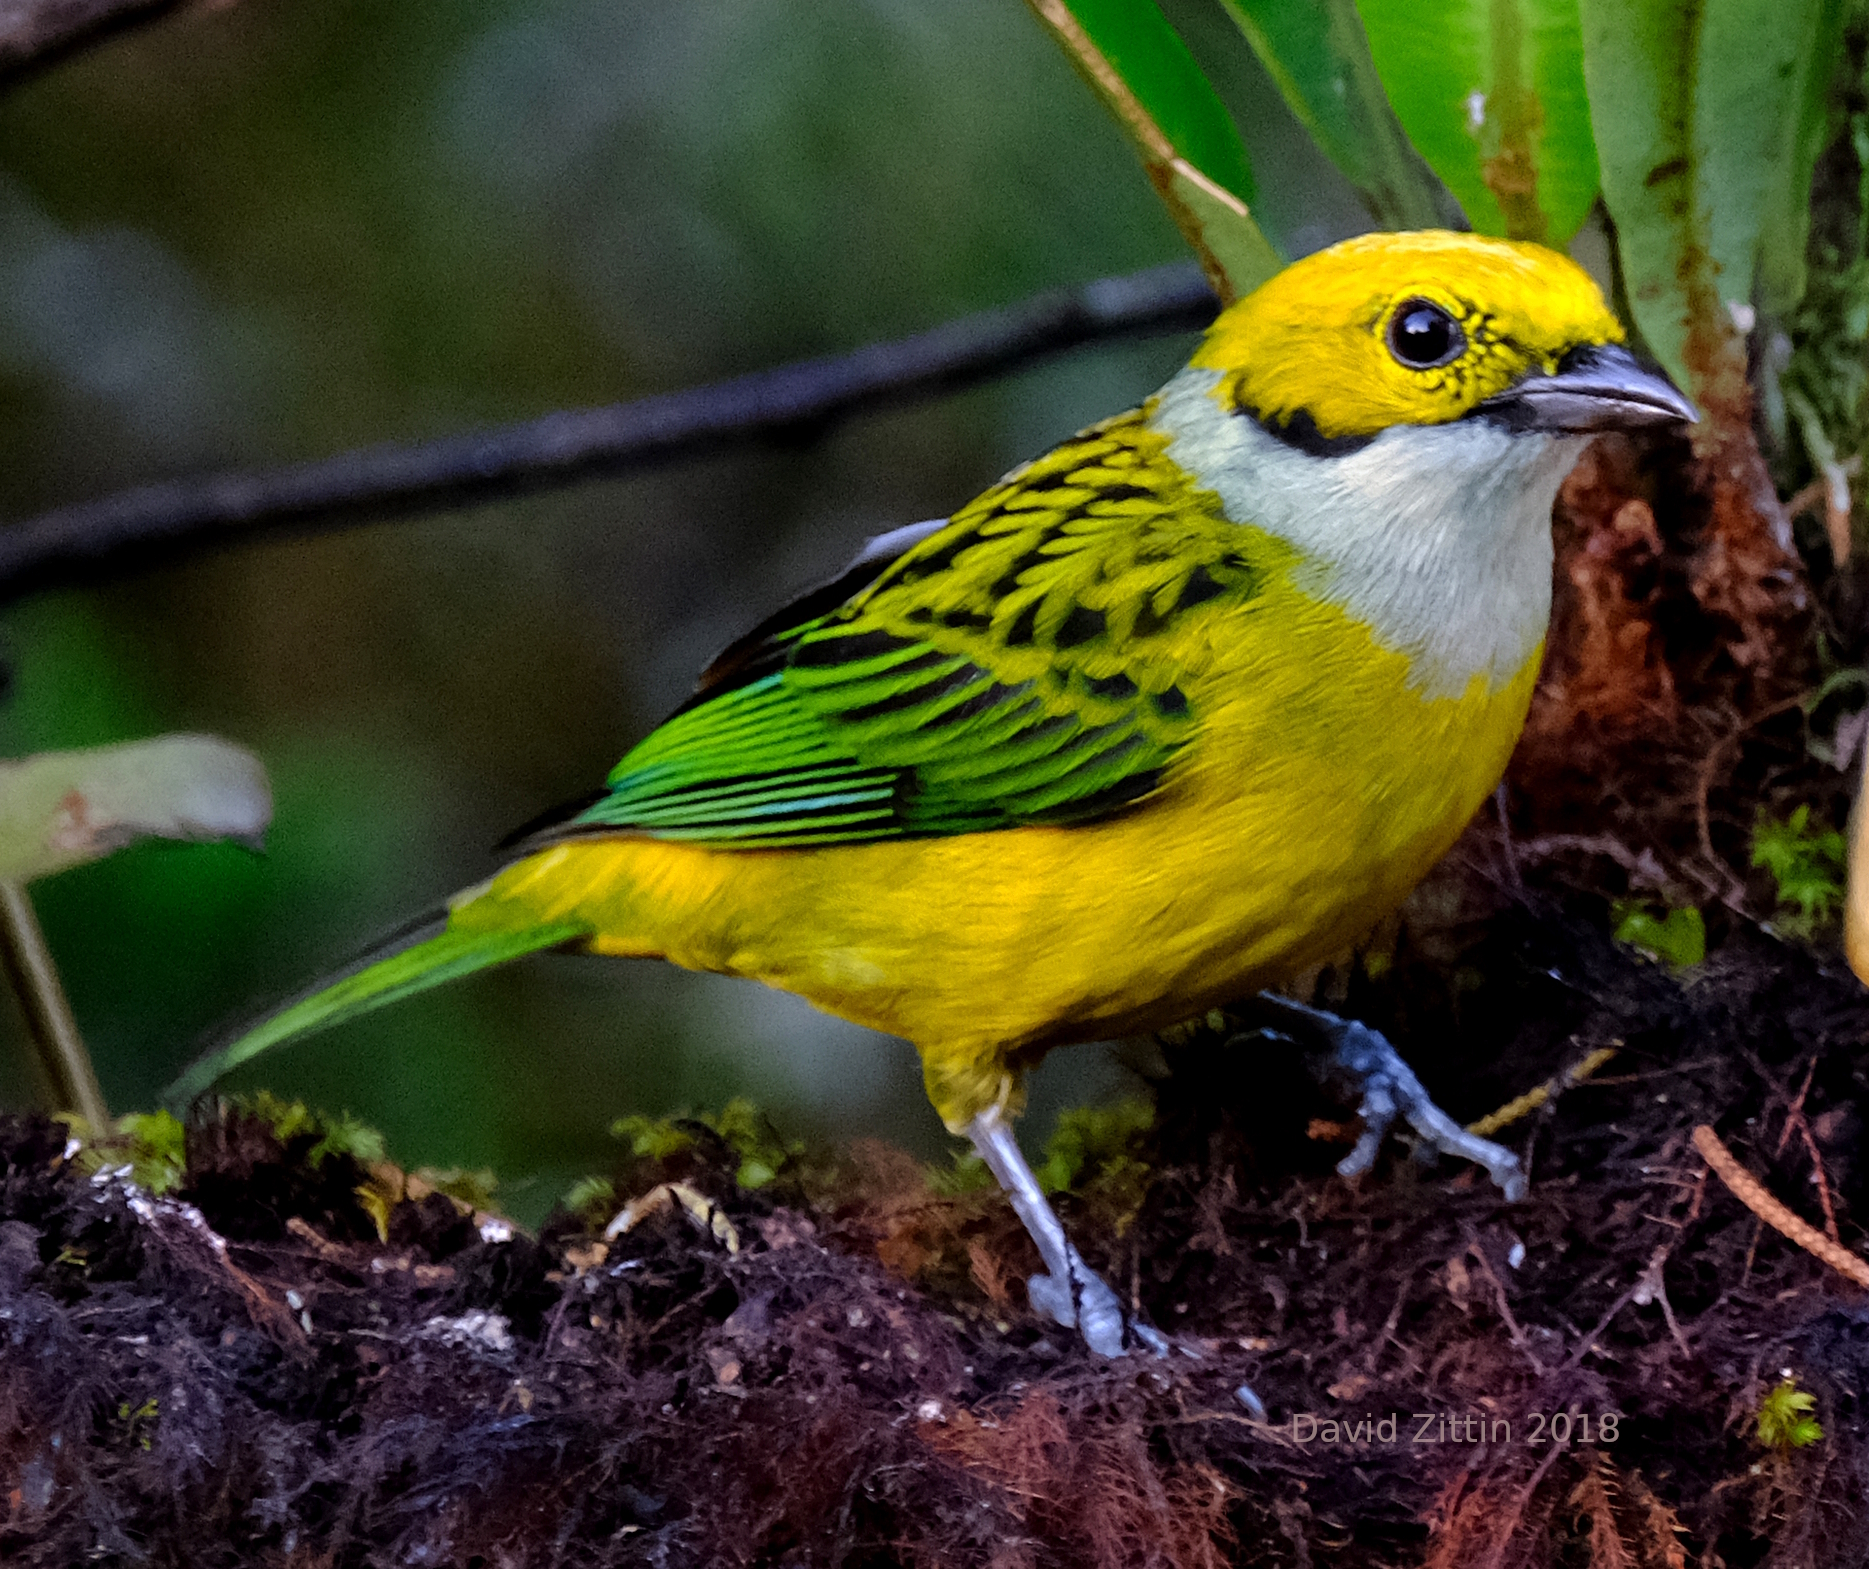 Silver-throated Tanager. Photo Taken at Las Cruces Biological Station, Costa Rica (David Zittin 2018)